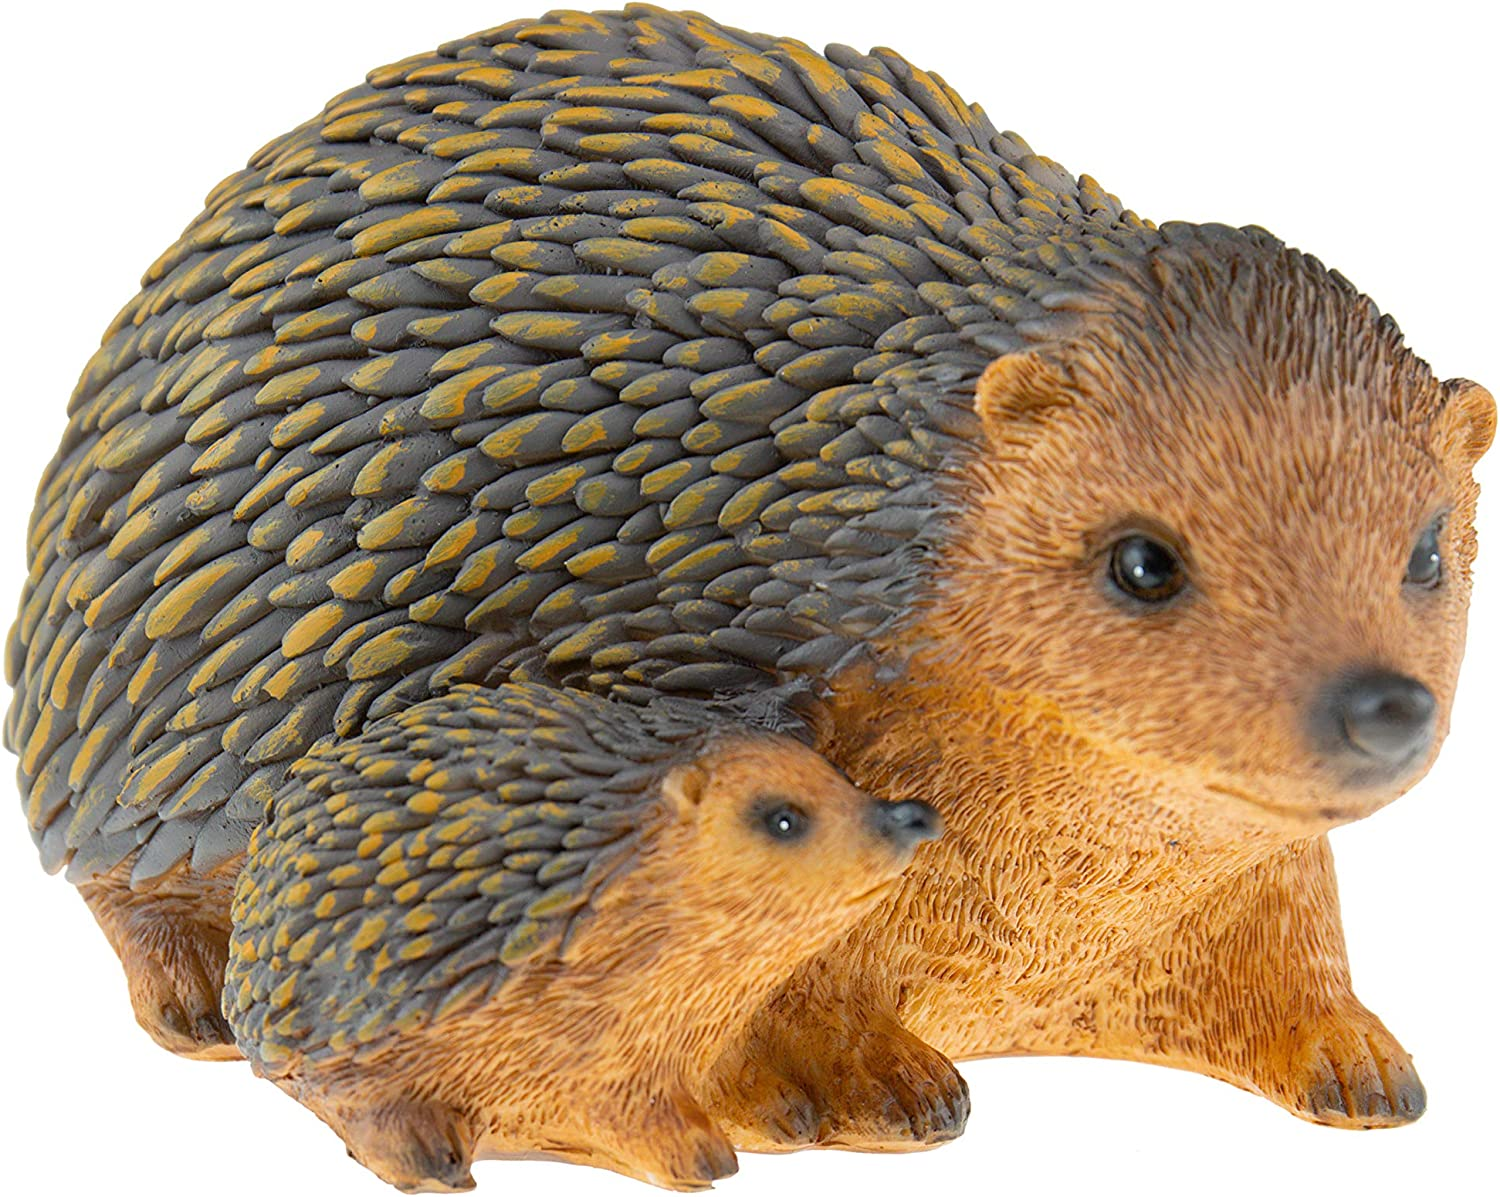 Cute Hedgehog Family Resin Garden Statue Decoration | Outdoor Lawn Yard Polyresin Animal Figurine Sculpture Ornament Décor